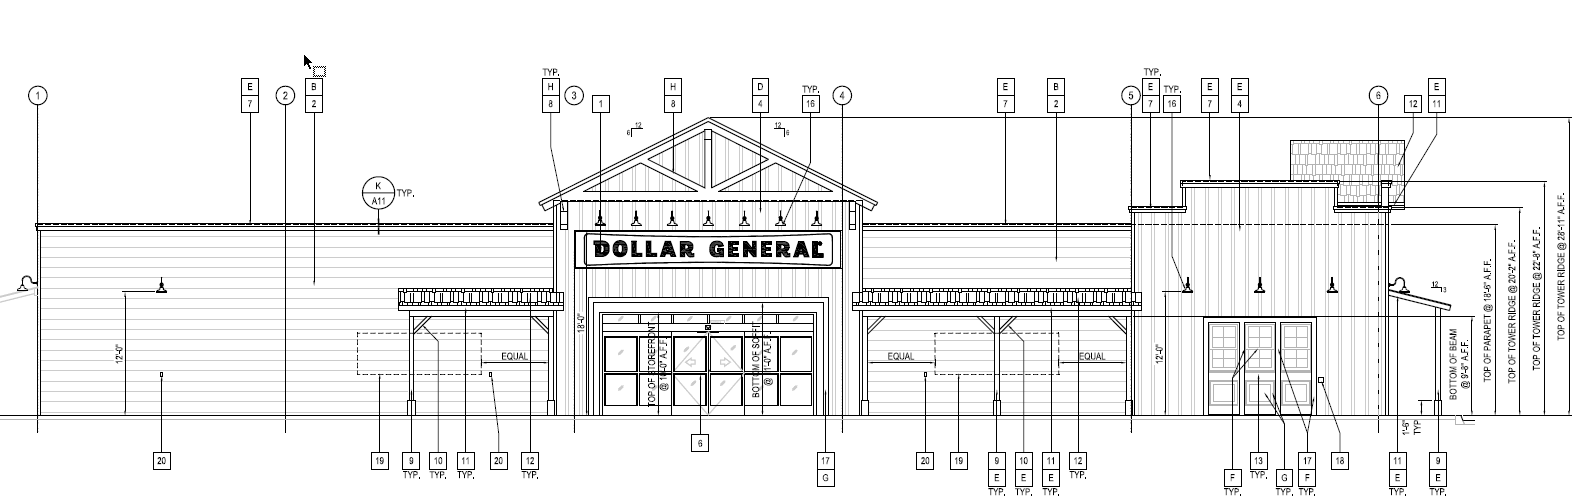 Rough and Ready Dollar General Elevation Drawing